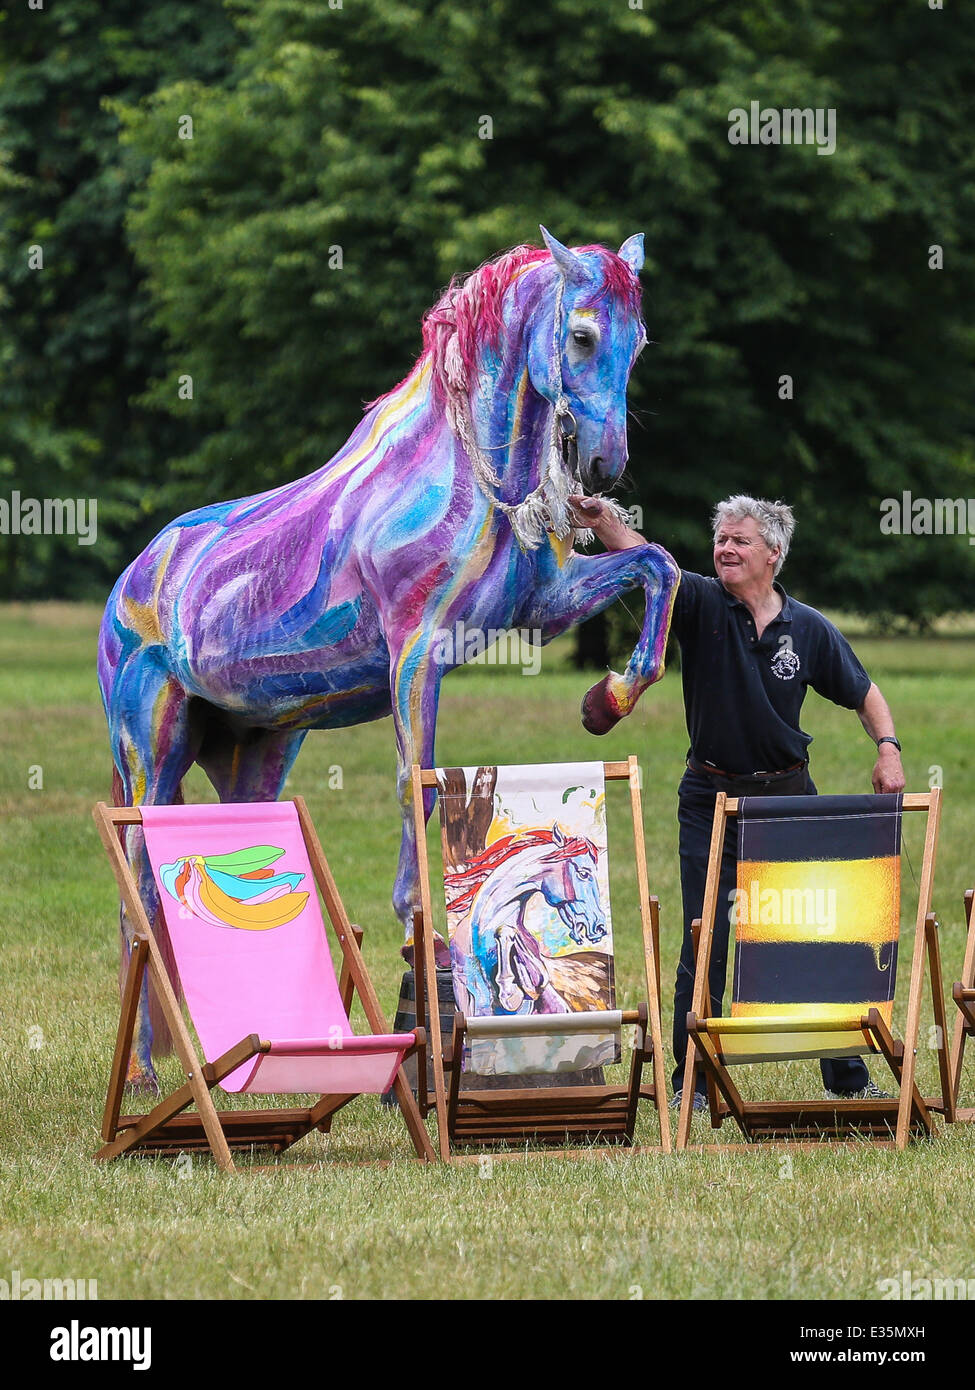 A Portuguese Lusitano called Tetua stands behind Ronnie Wood's Pegasus for the launch of Deckchair Dreams 2013, - Stock Image